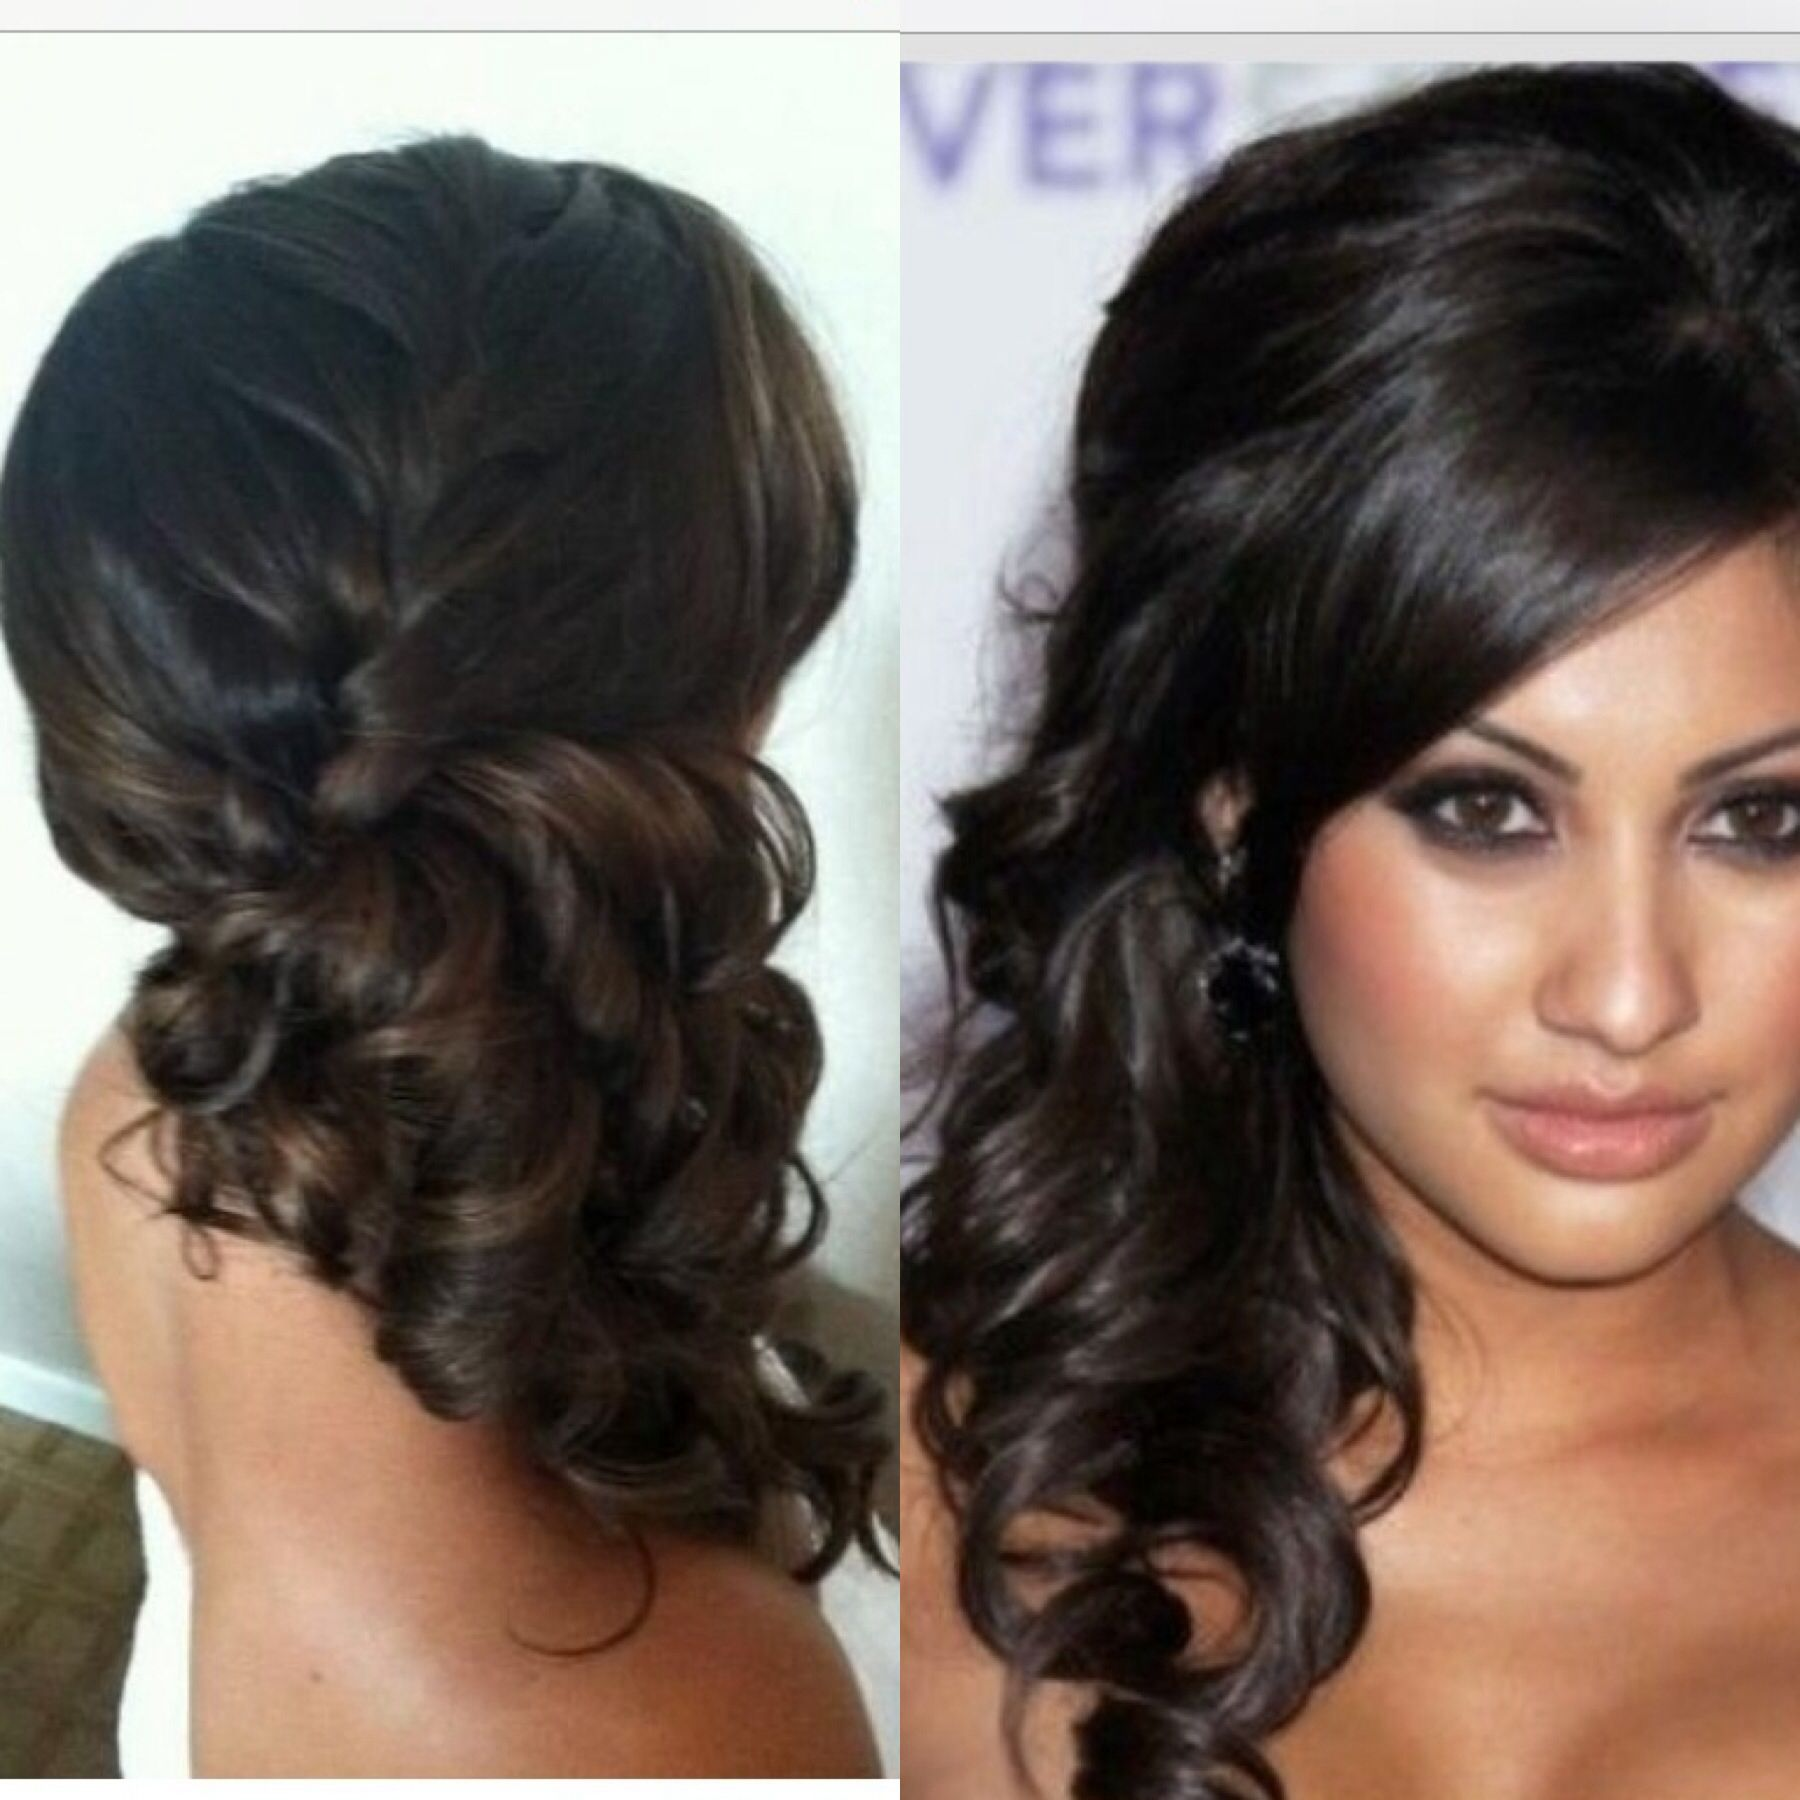 bridesmaid hair. up do. front and back! side pony with curls